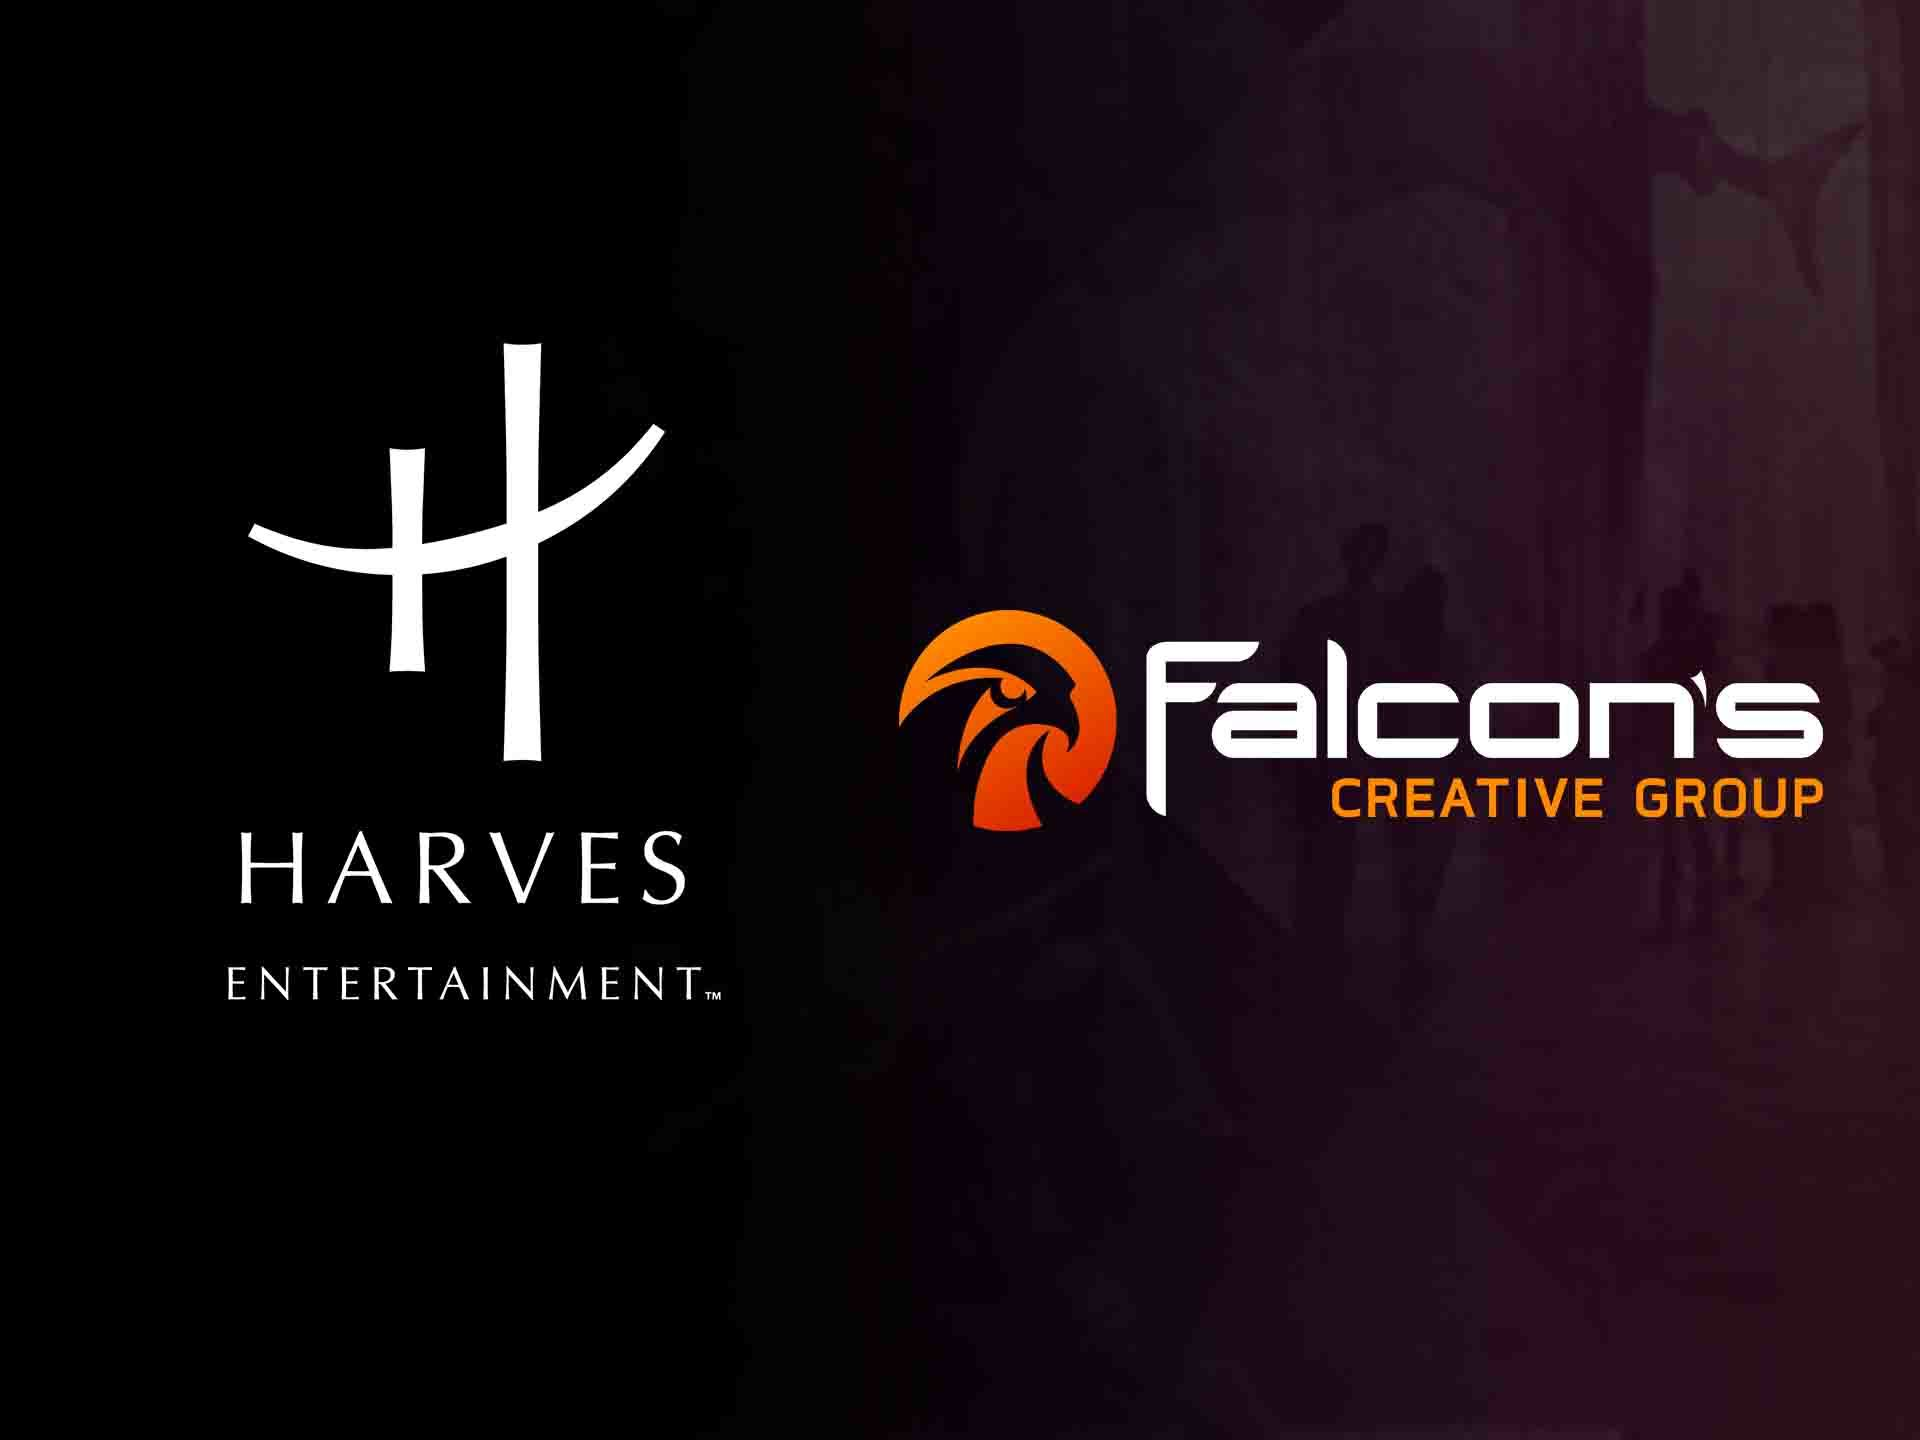 Harves and Falcon's Partnership